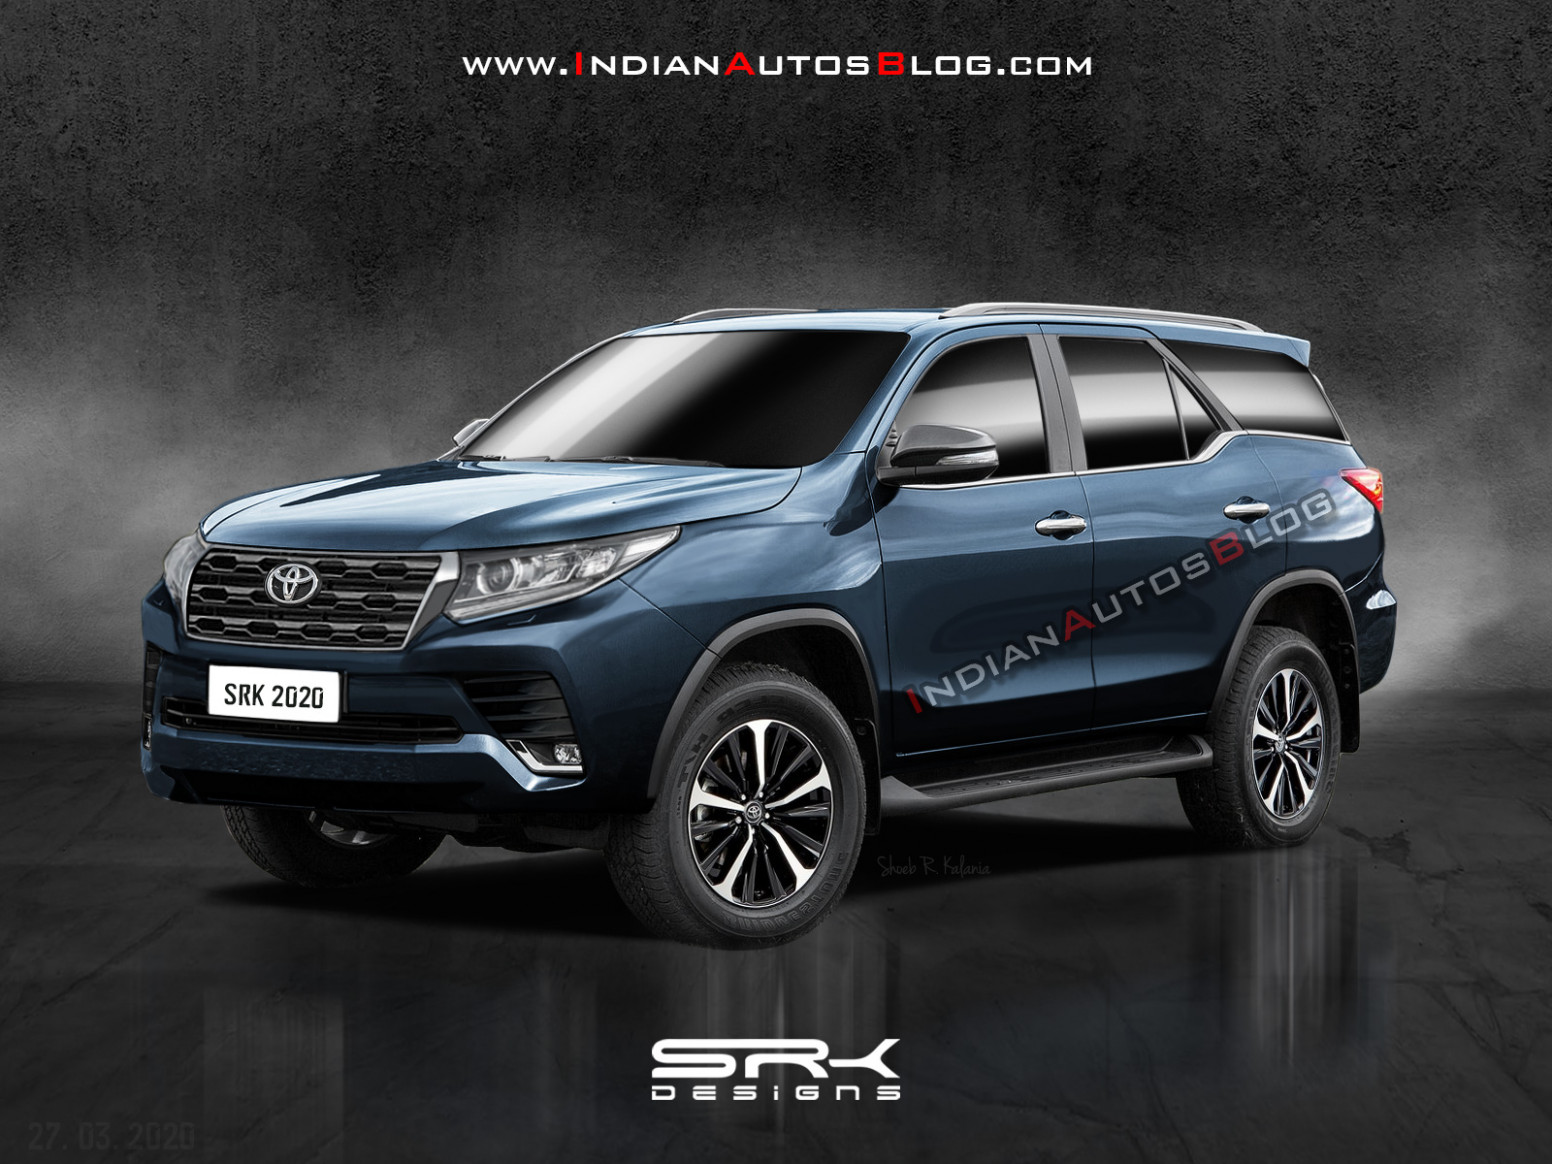 New Toyota Fortuner (facelift) - IAB Rendering - toyota fortuner 2020